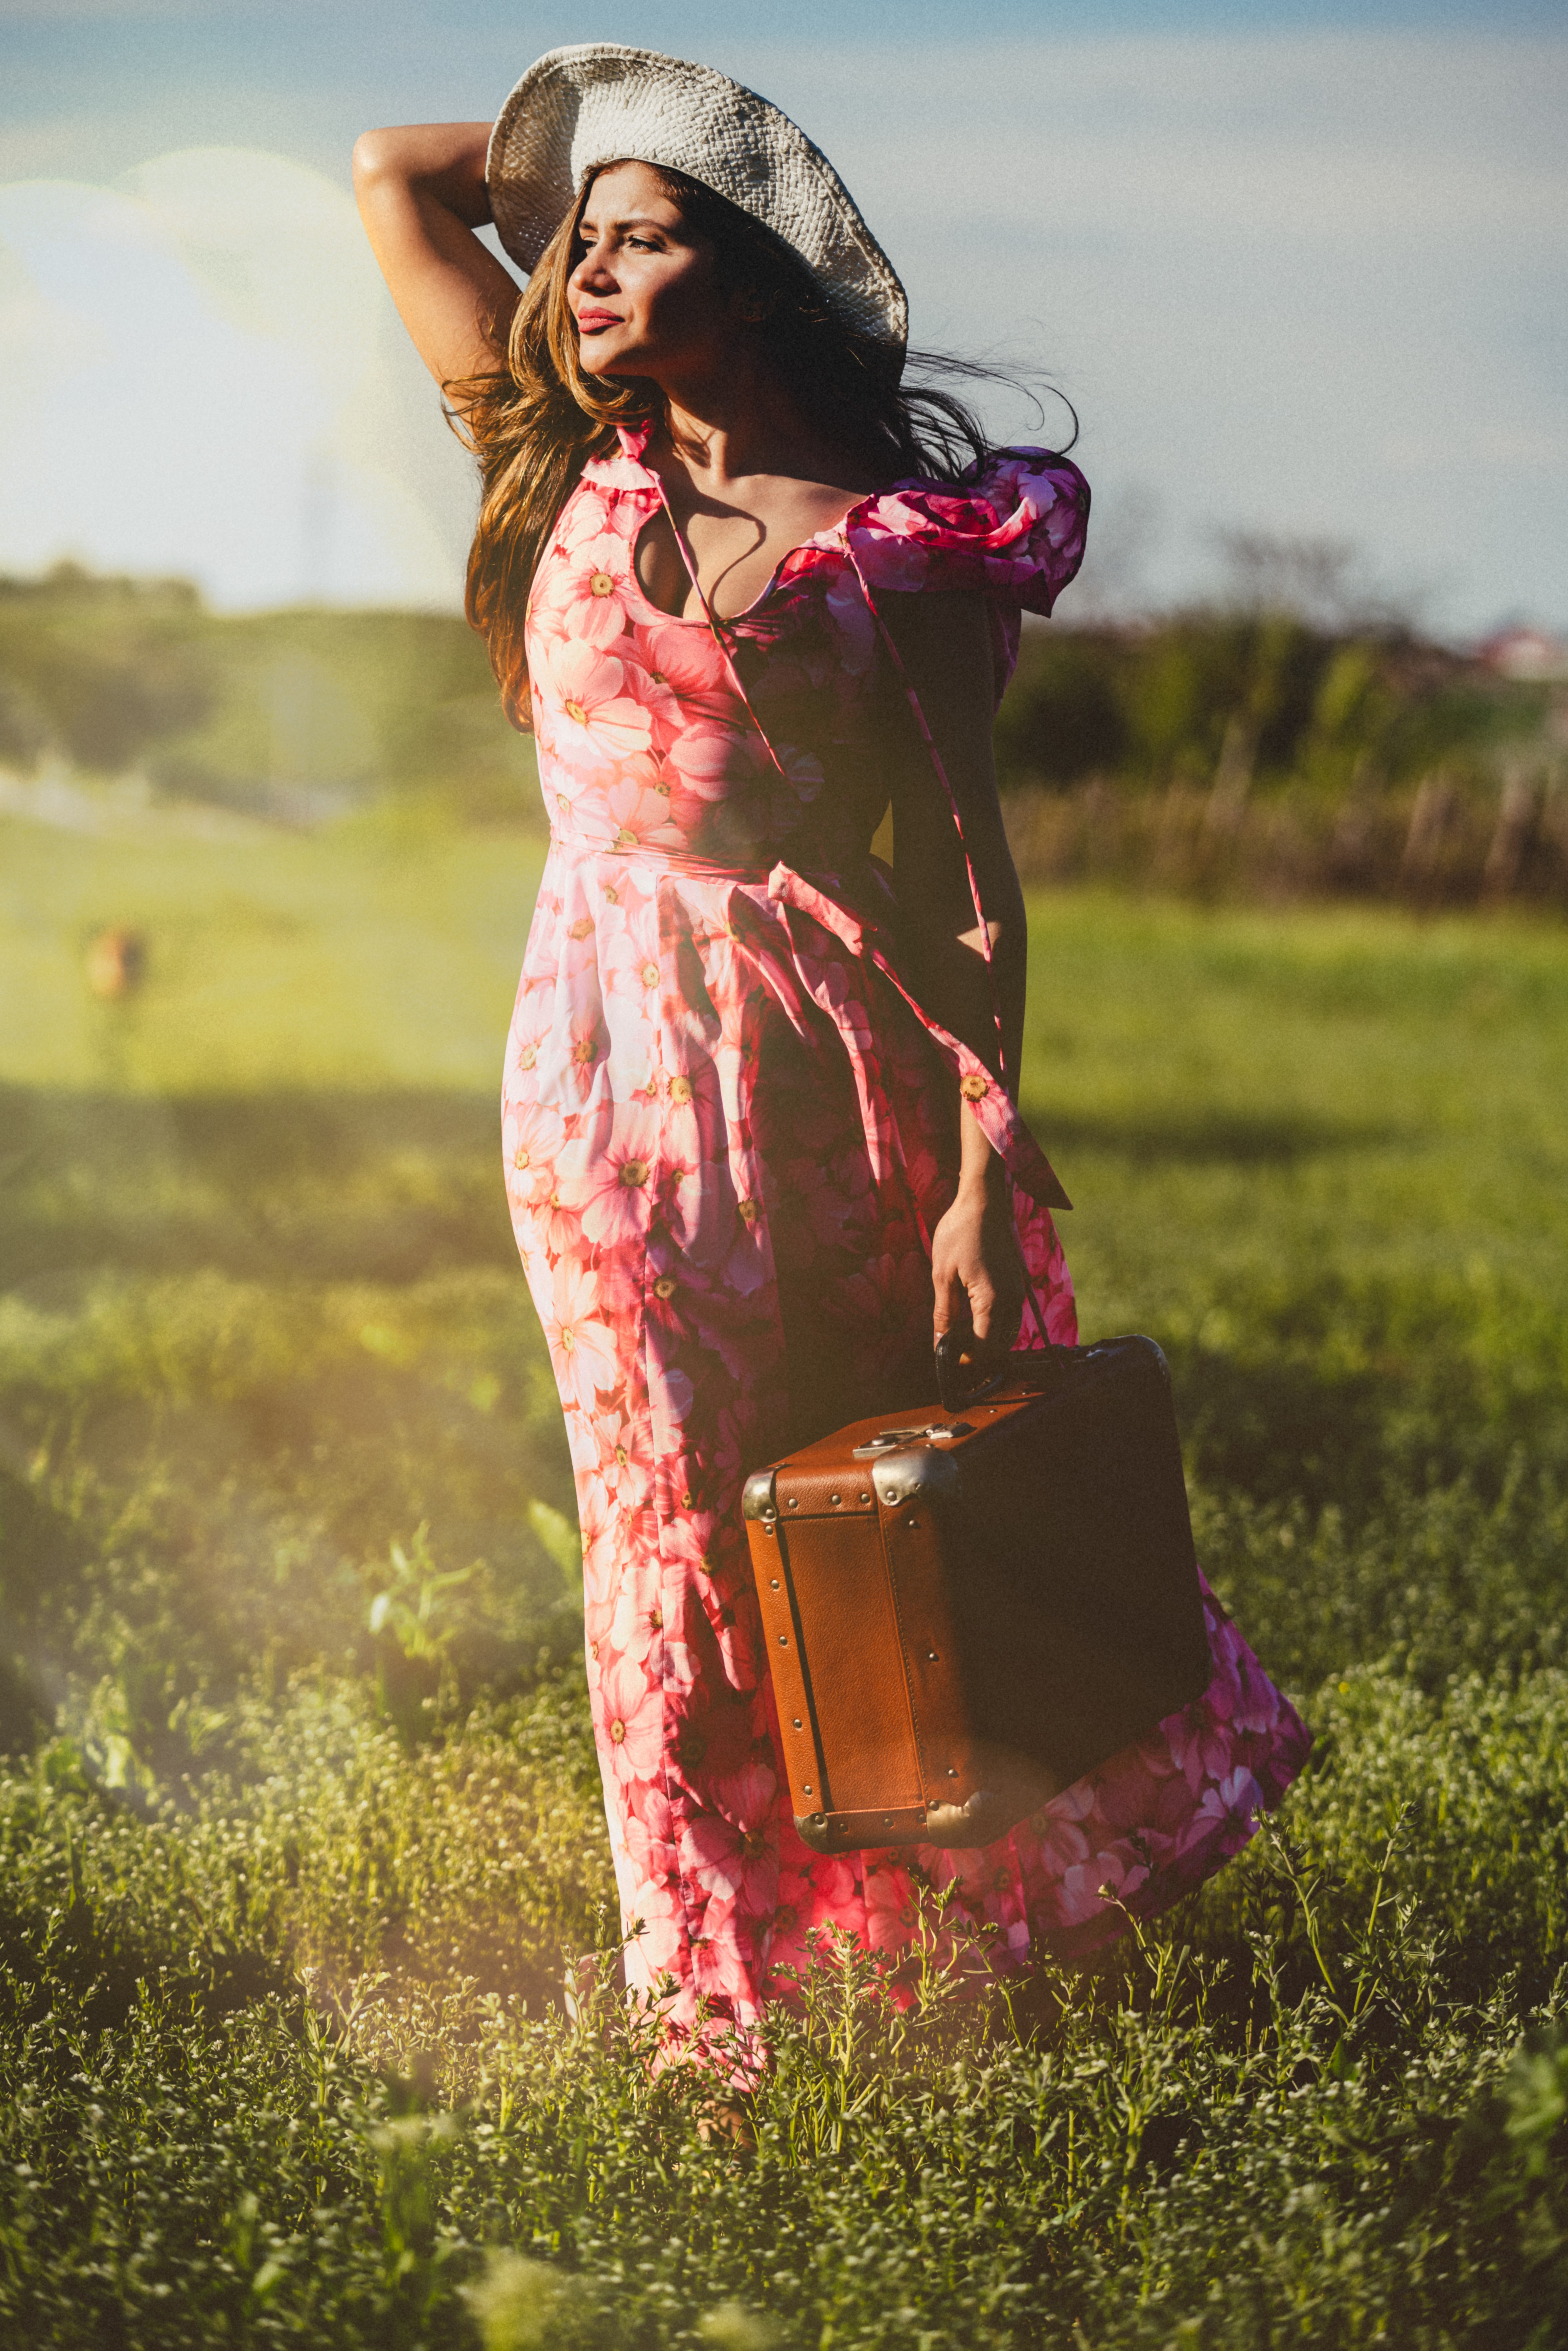 Travelling Hippy woman with suitcase by her side